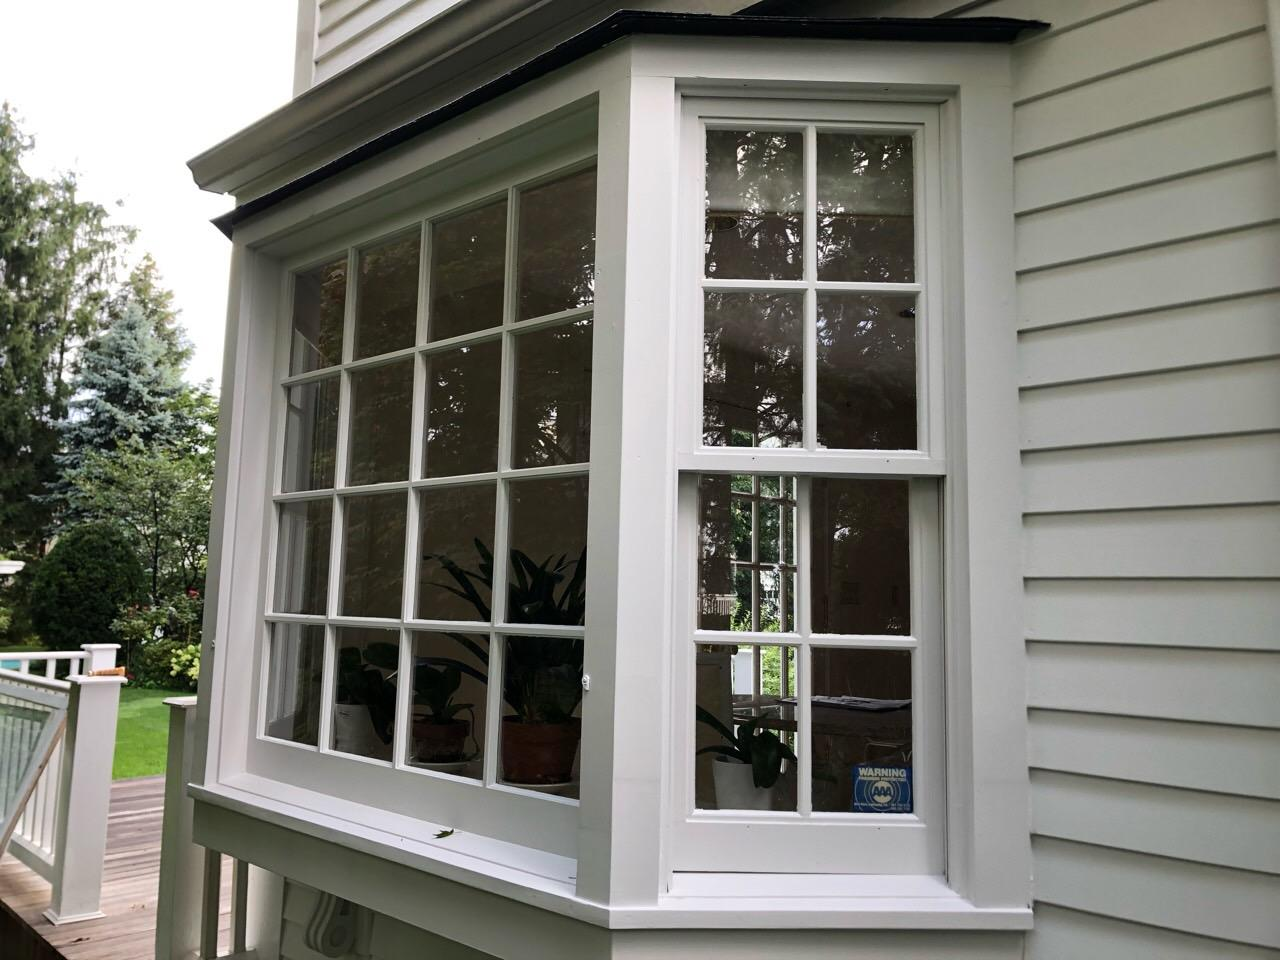 Exterior Painting in Greenwich, CT - After Photo